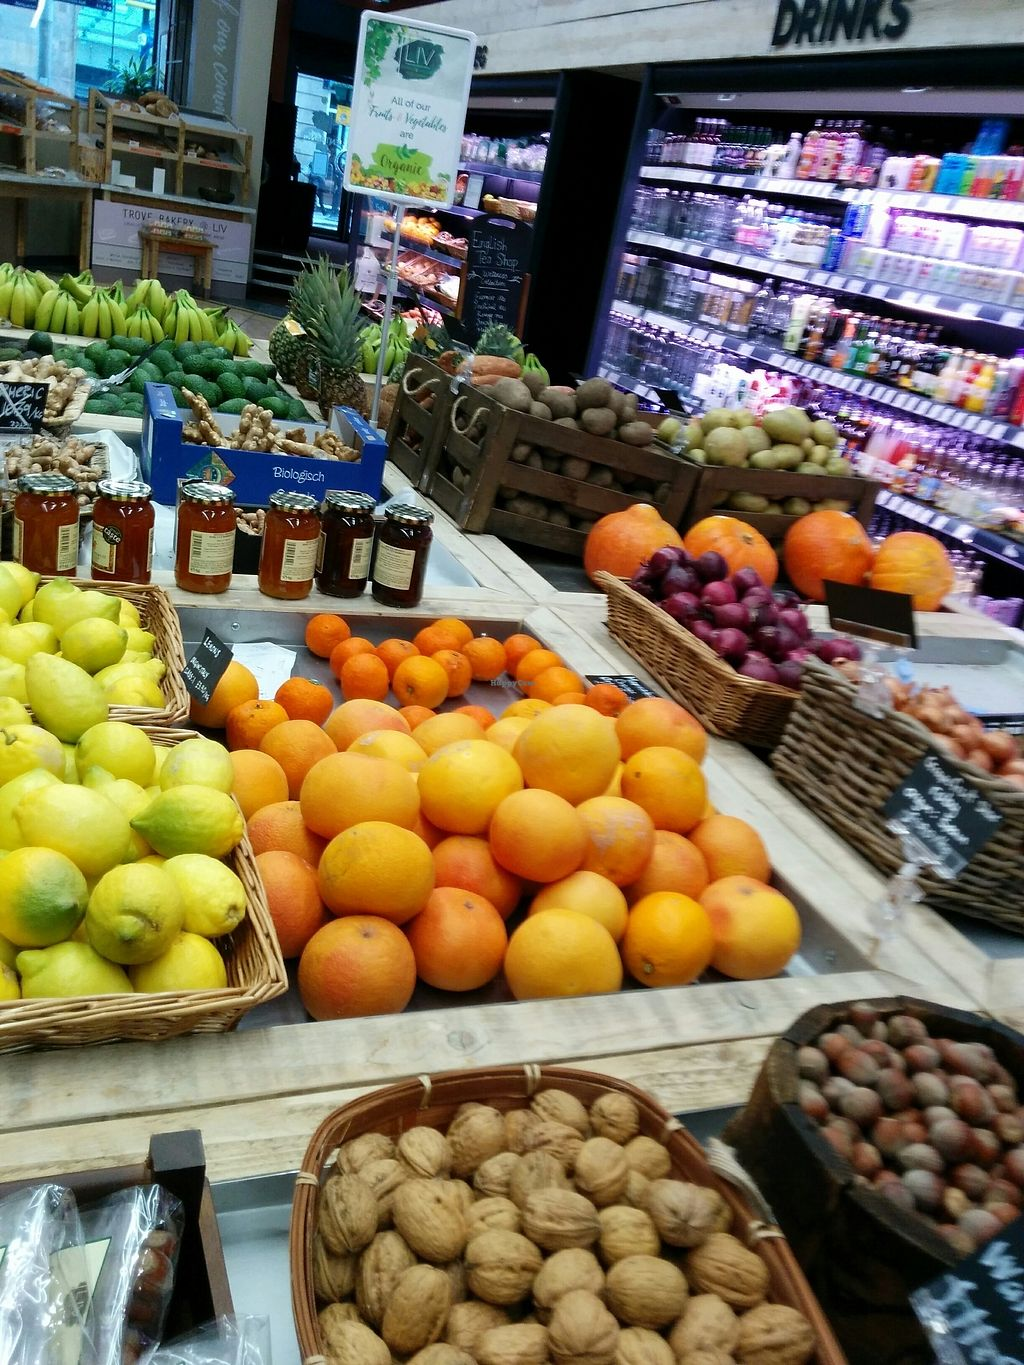 """Photo of LIV Organic & Natural Food Market  by <a href=""""/members/profile/CLRtraveller"""">CLRtraveller</a> <br/>produce section <br/> March 9, 2018  - <a href='/contact/abuse/image/91895/368452'>Report</a>"""